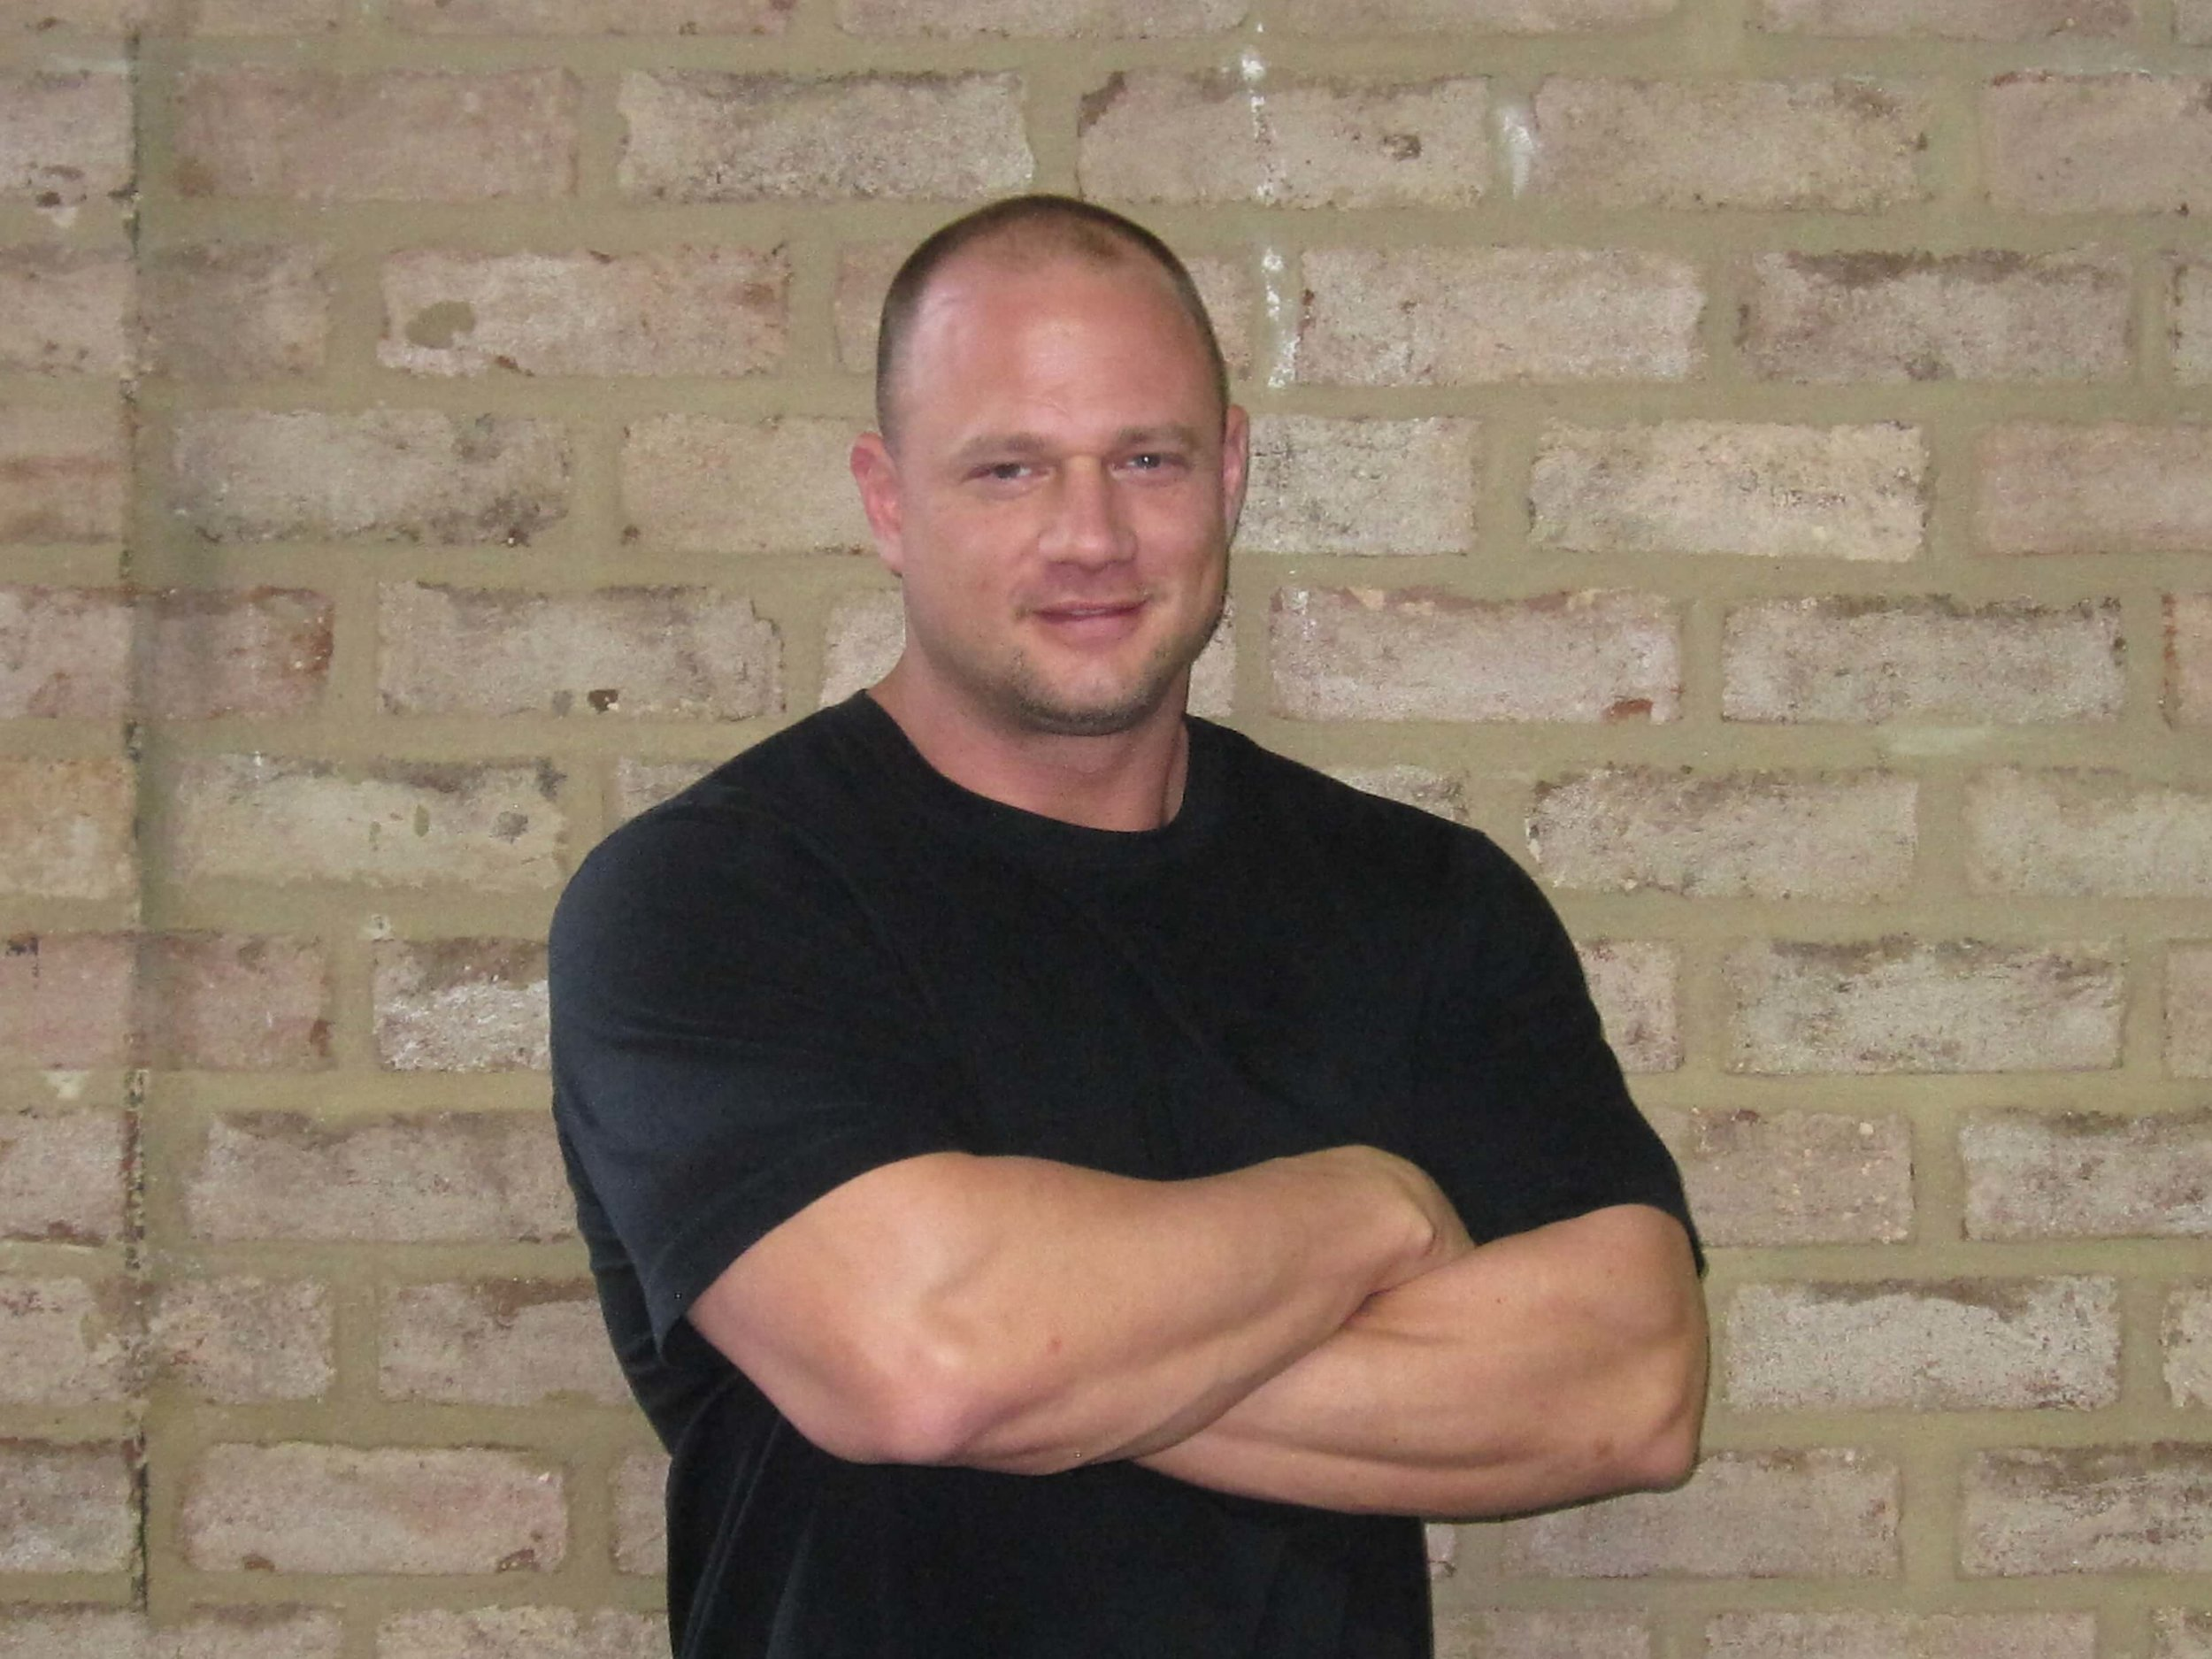 "Matt Smith - Matt believes in building strong healthy bodies! He prides himself on giving his clients his ""The Sky is the Limit"" attitude. His expertise in the fitness industry comes from a wide range of experience and years of knowledge. Training for 12 years now with 20 years of personal experience in the gym. Competing in Division I NCAA football at UTEP gave him an experience that most will never have! He utilizes a wide variety of training styles Including strength training, metabolic conditioning, boxing, active rest training, and interval cardio. His clientele consists of a wide range of clients from 18 to 75 years of age, men and women! Using the right combination of methods specific to your goals he can help you achieve the results you are after! He is NASM Certified (National Academy of Sports Medicine)Smitty.Smith67@gmail.com"